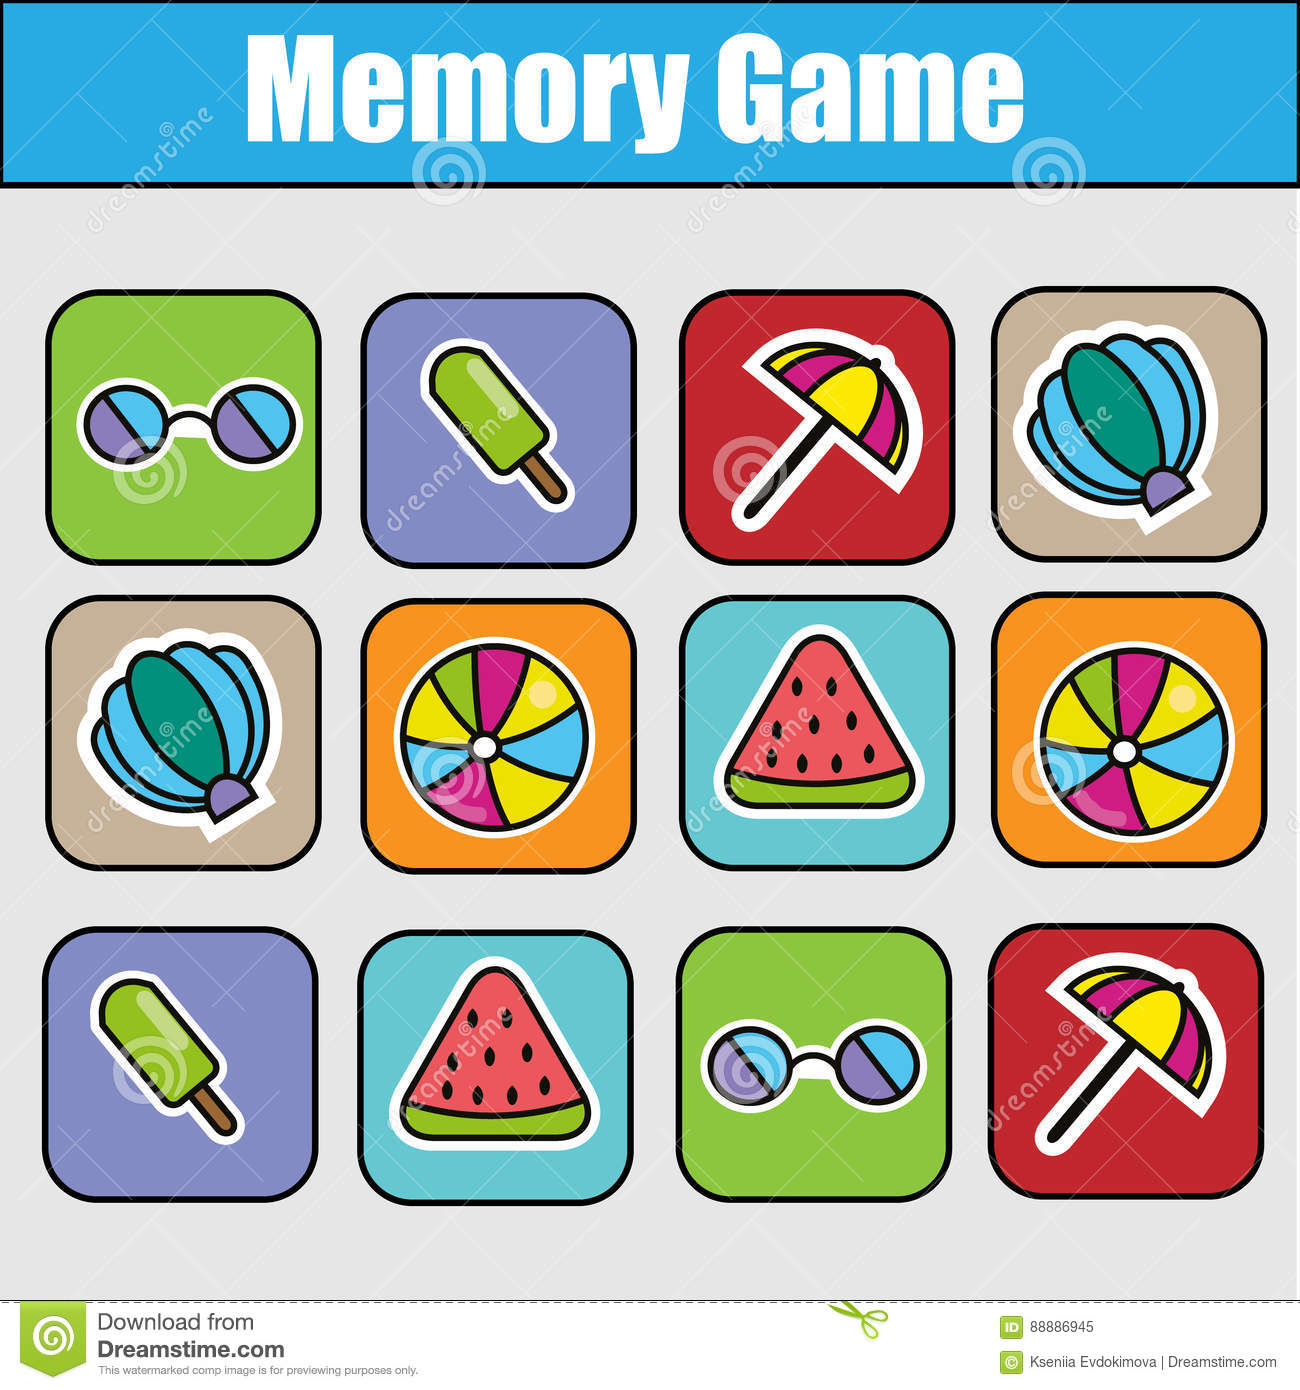 memory game template powerpoint gallery - templates example free, Modern powerpoint